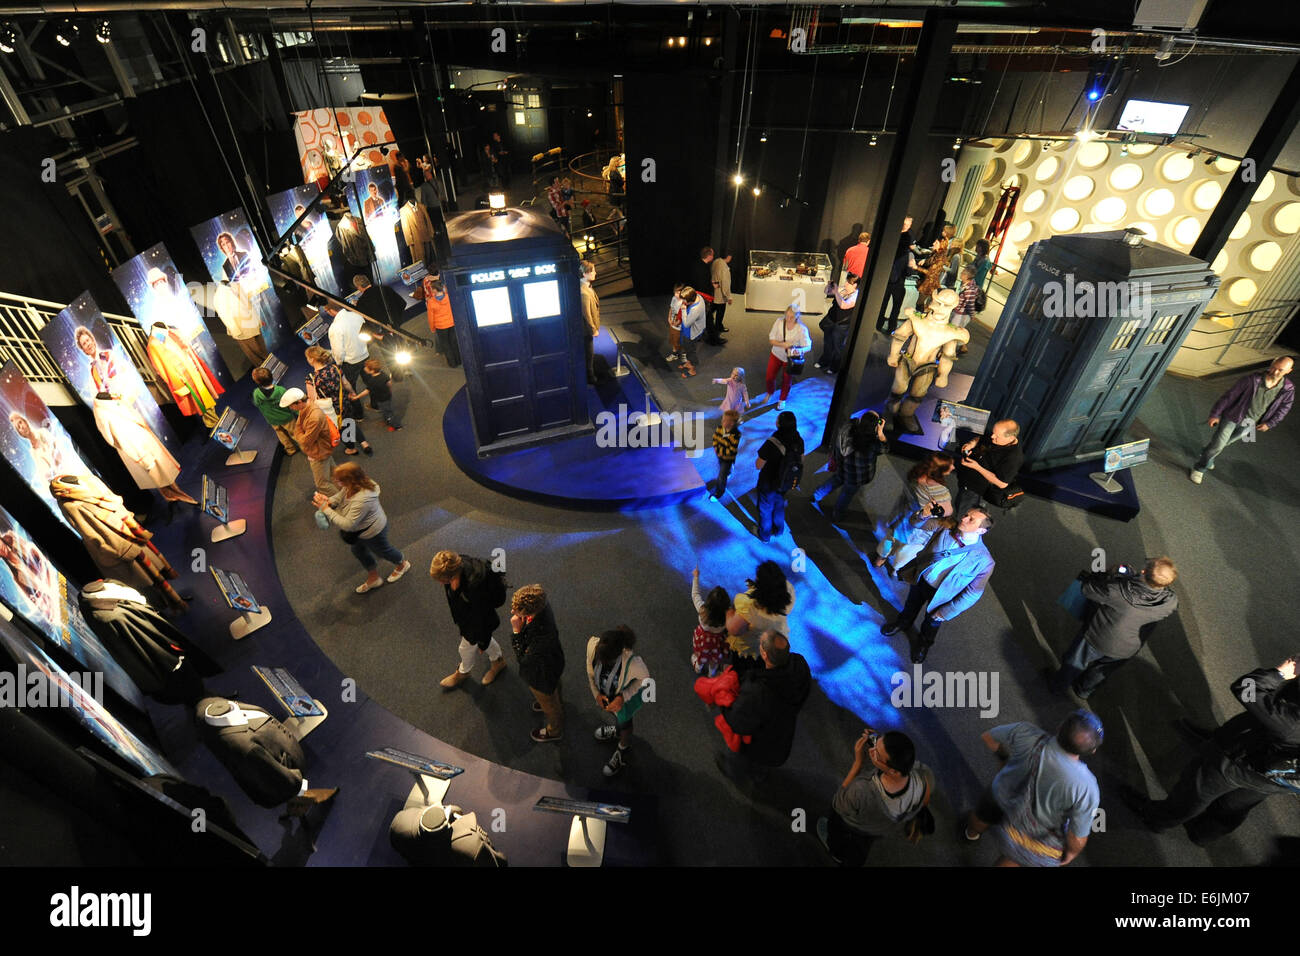 Doctor Who Experience exhibition centre at Cardiff Bay, South Wales - Stock Image